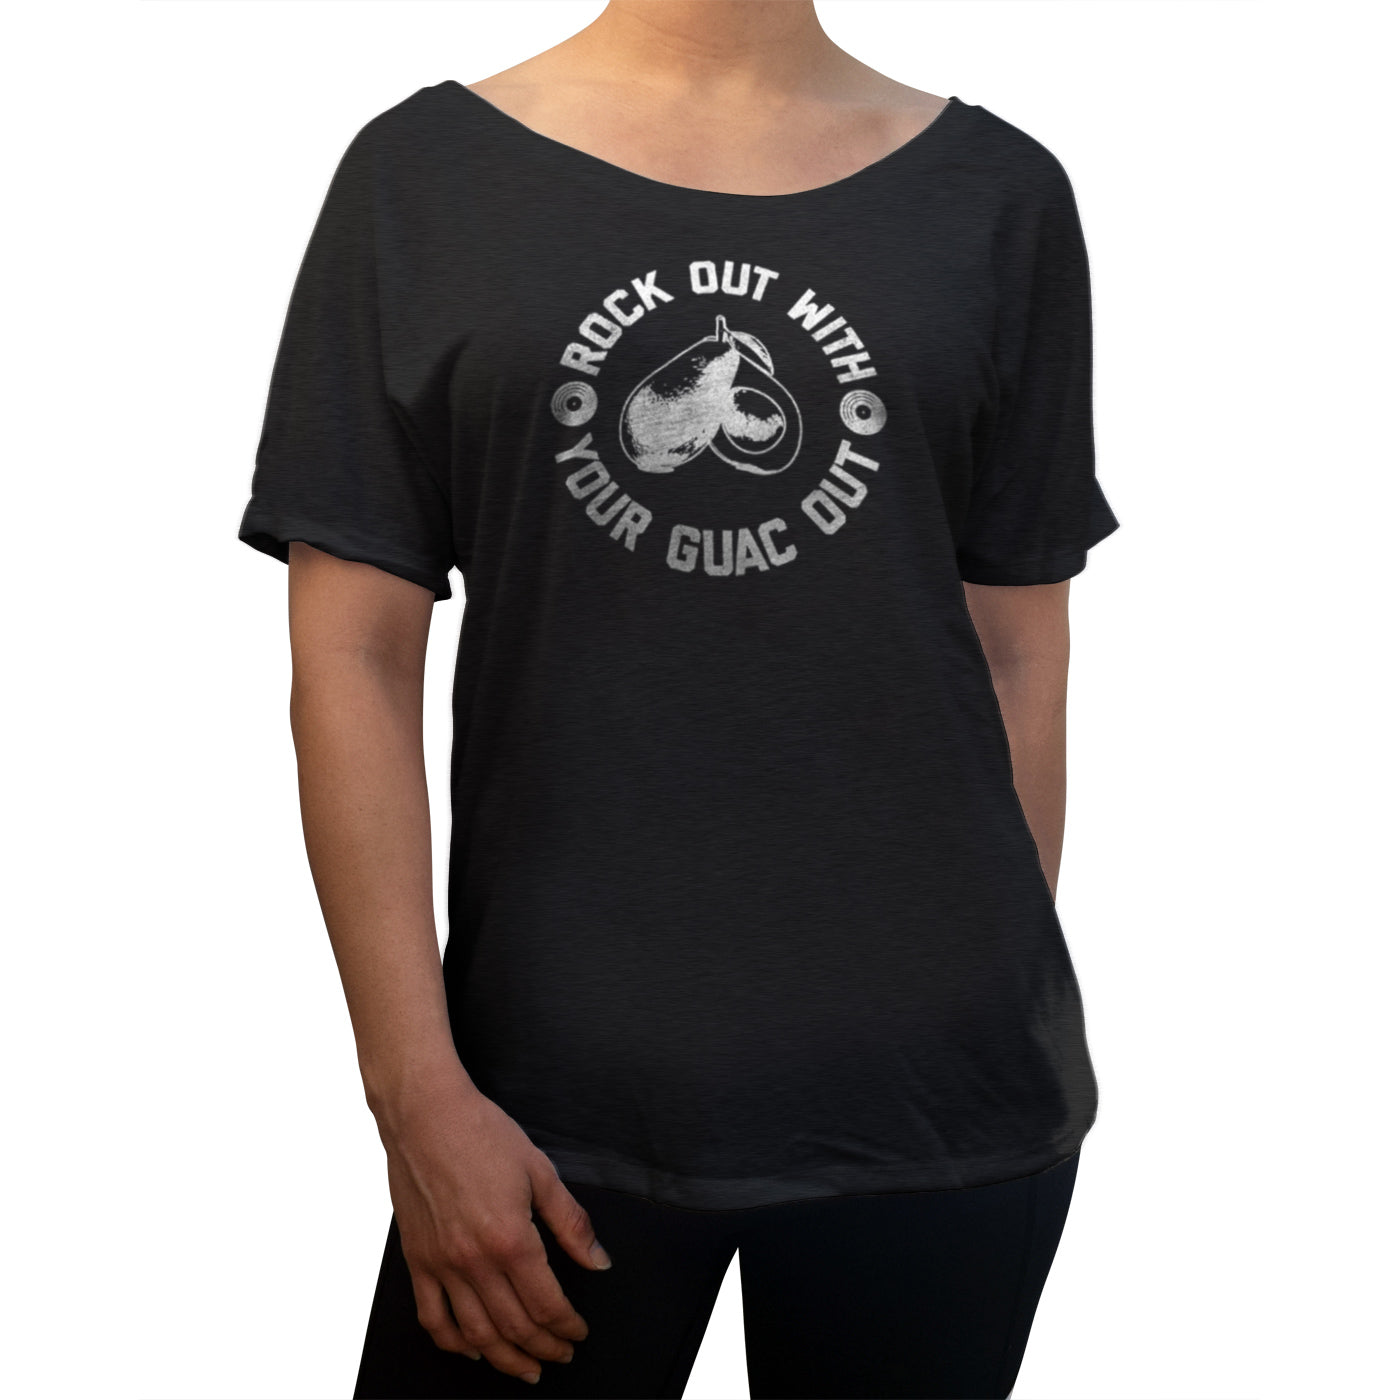 Women's Rock Out With Your Guac Out Guacamole Scoop Neck T-Shirt